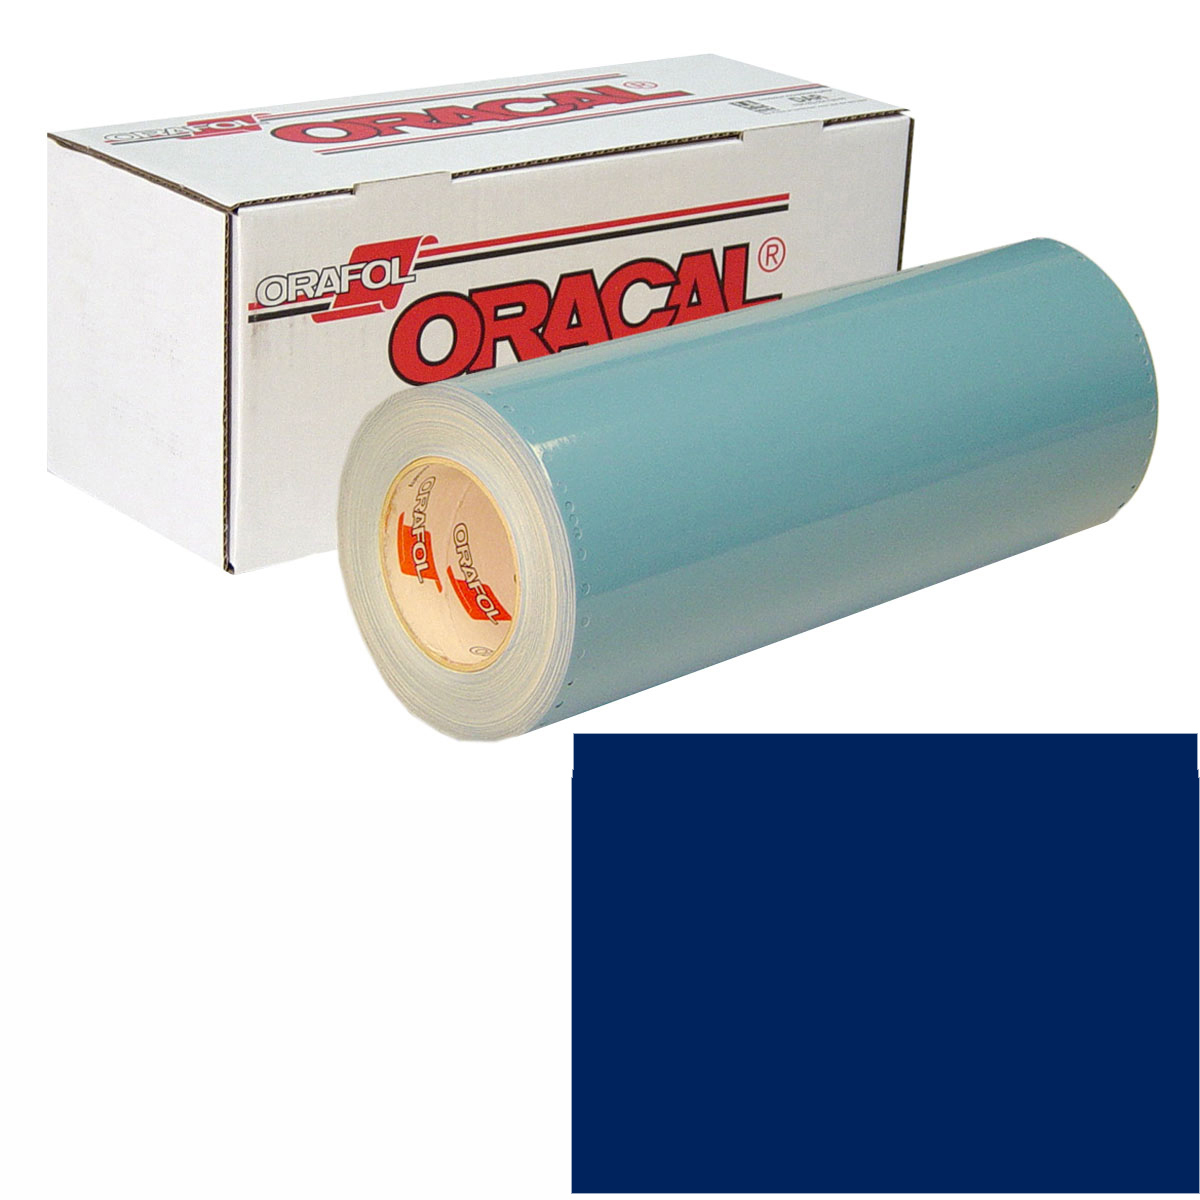 ORACAL 751 30In X 50Yd 058 Ultramarine Blue